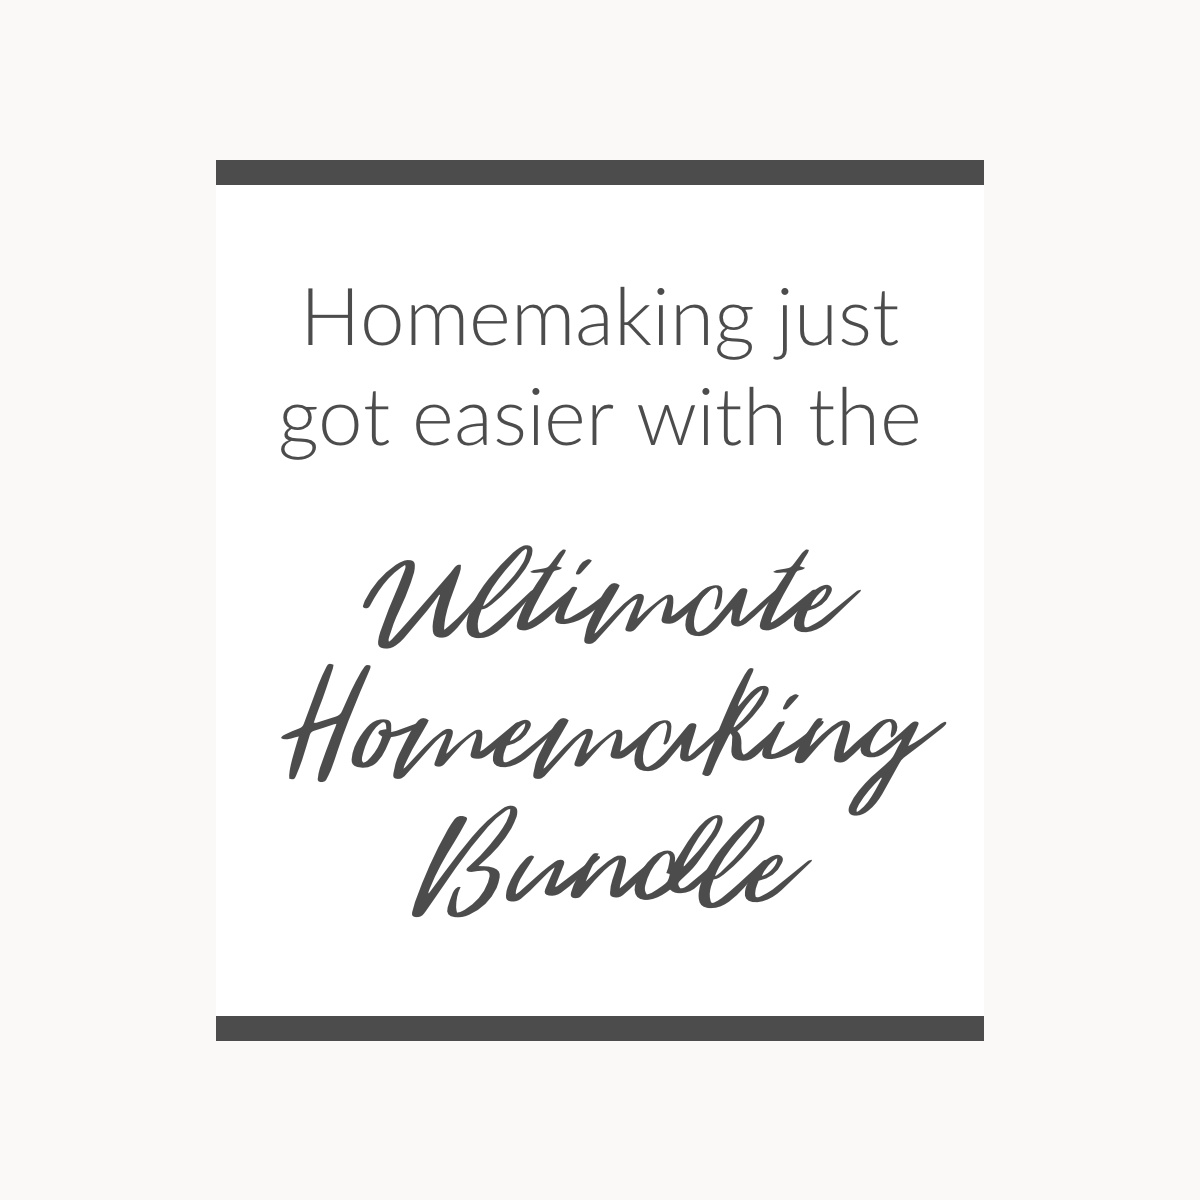 Homemaking just got easier... - 1200 x 1200.png